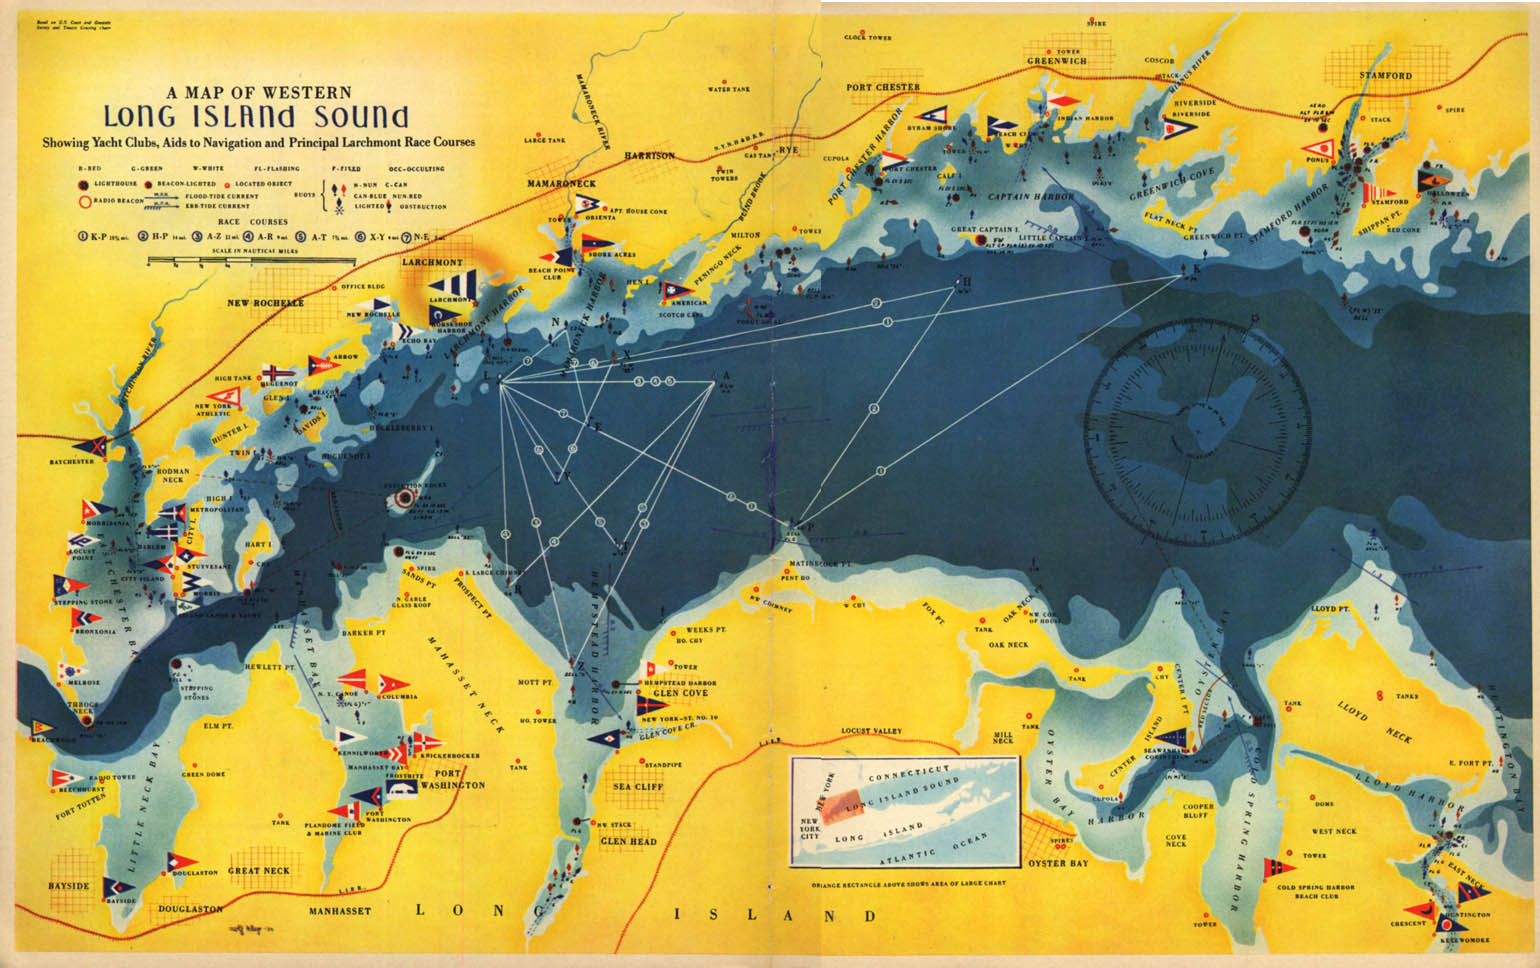 1939 Map of Western Long Island Sound w/ yacht clubs from Fortune magazine